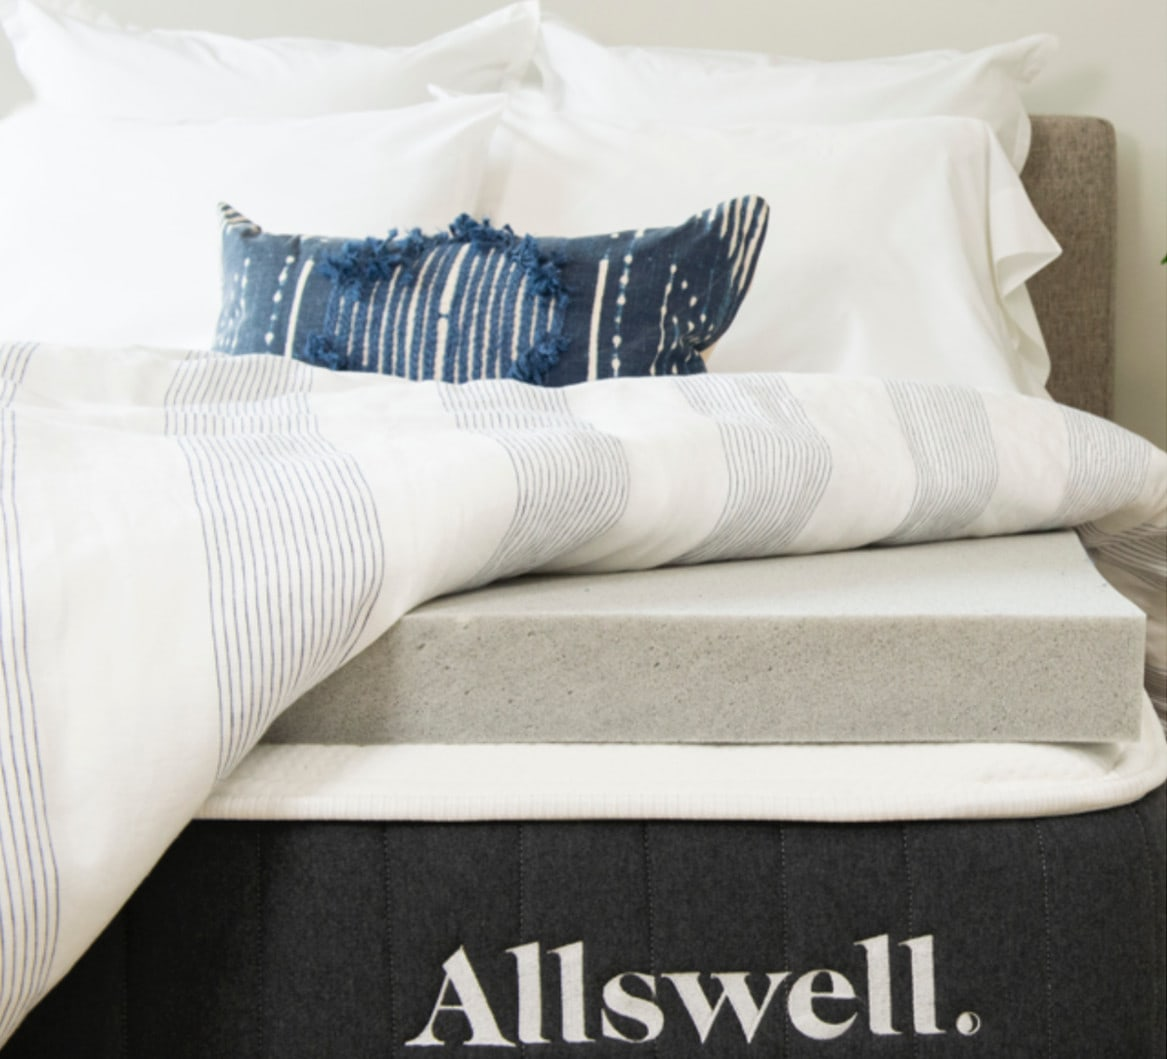 allswell mattress toppers